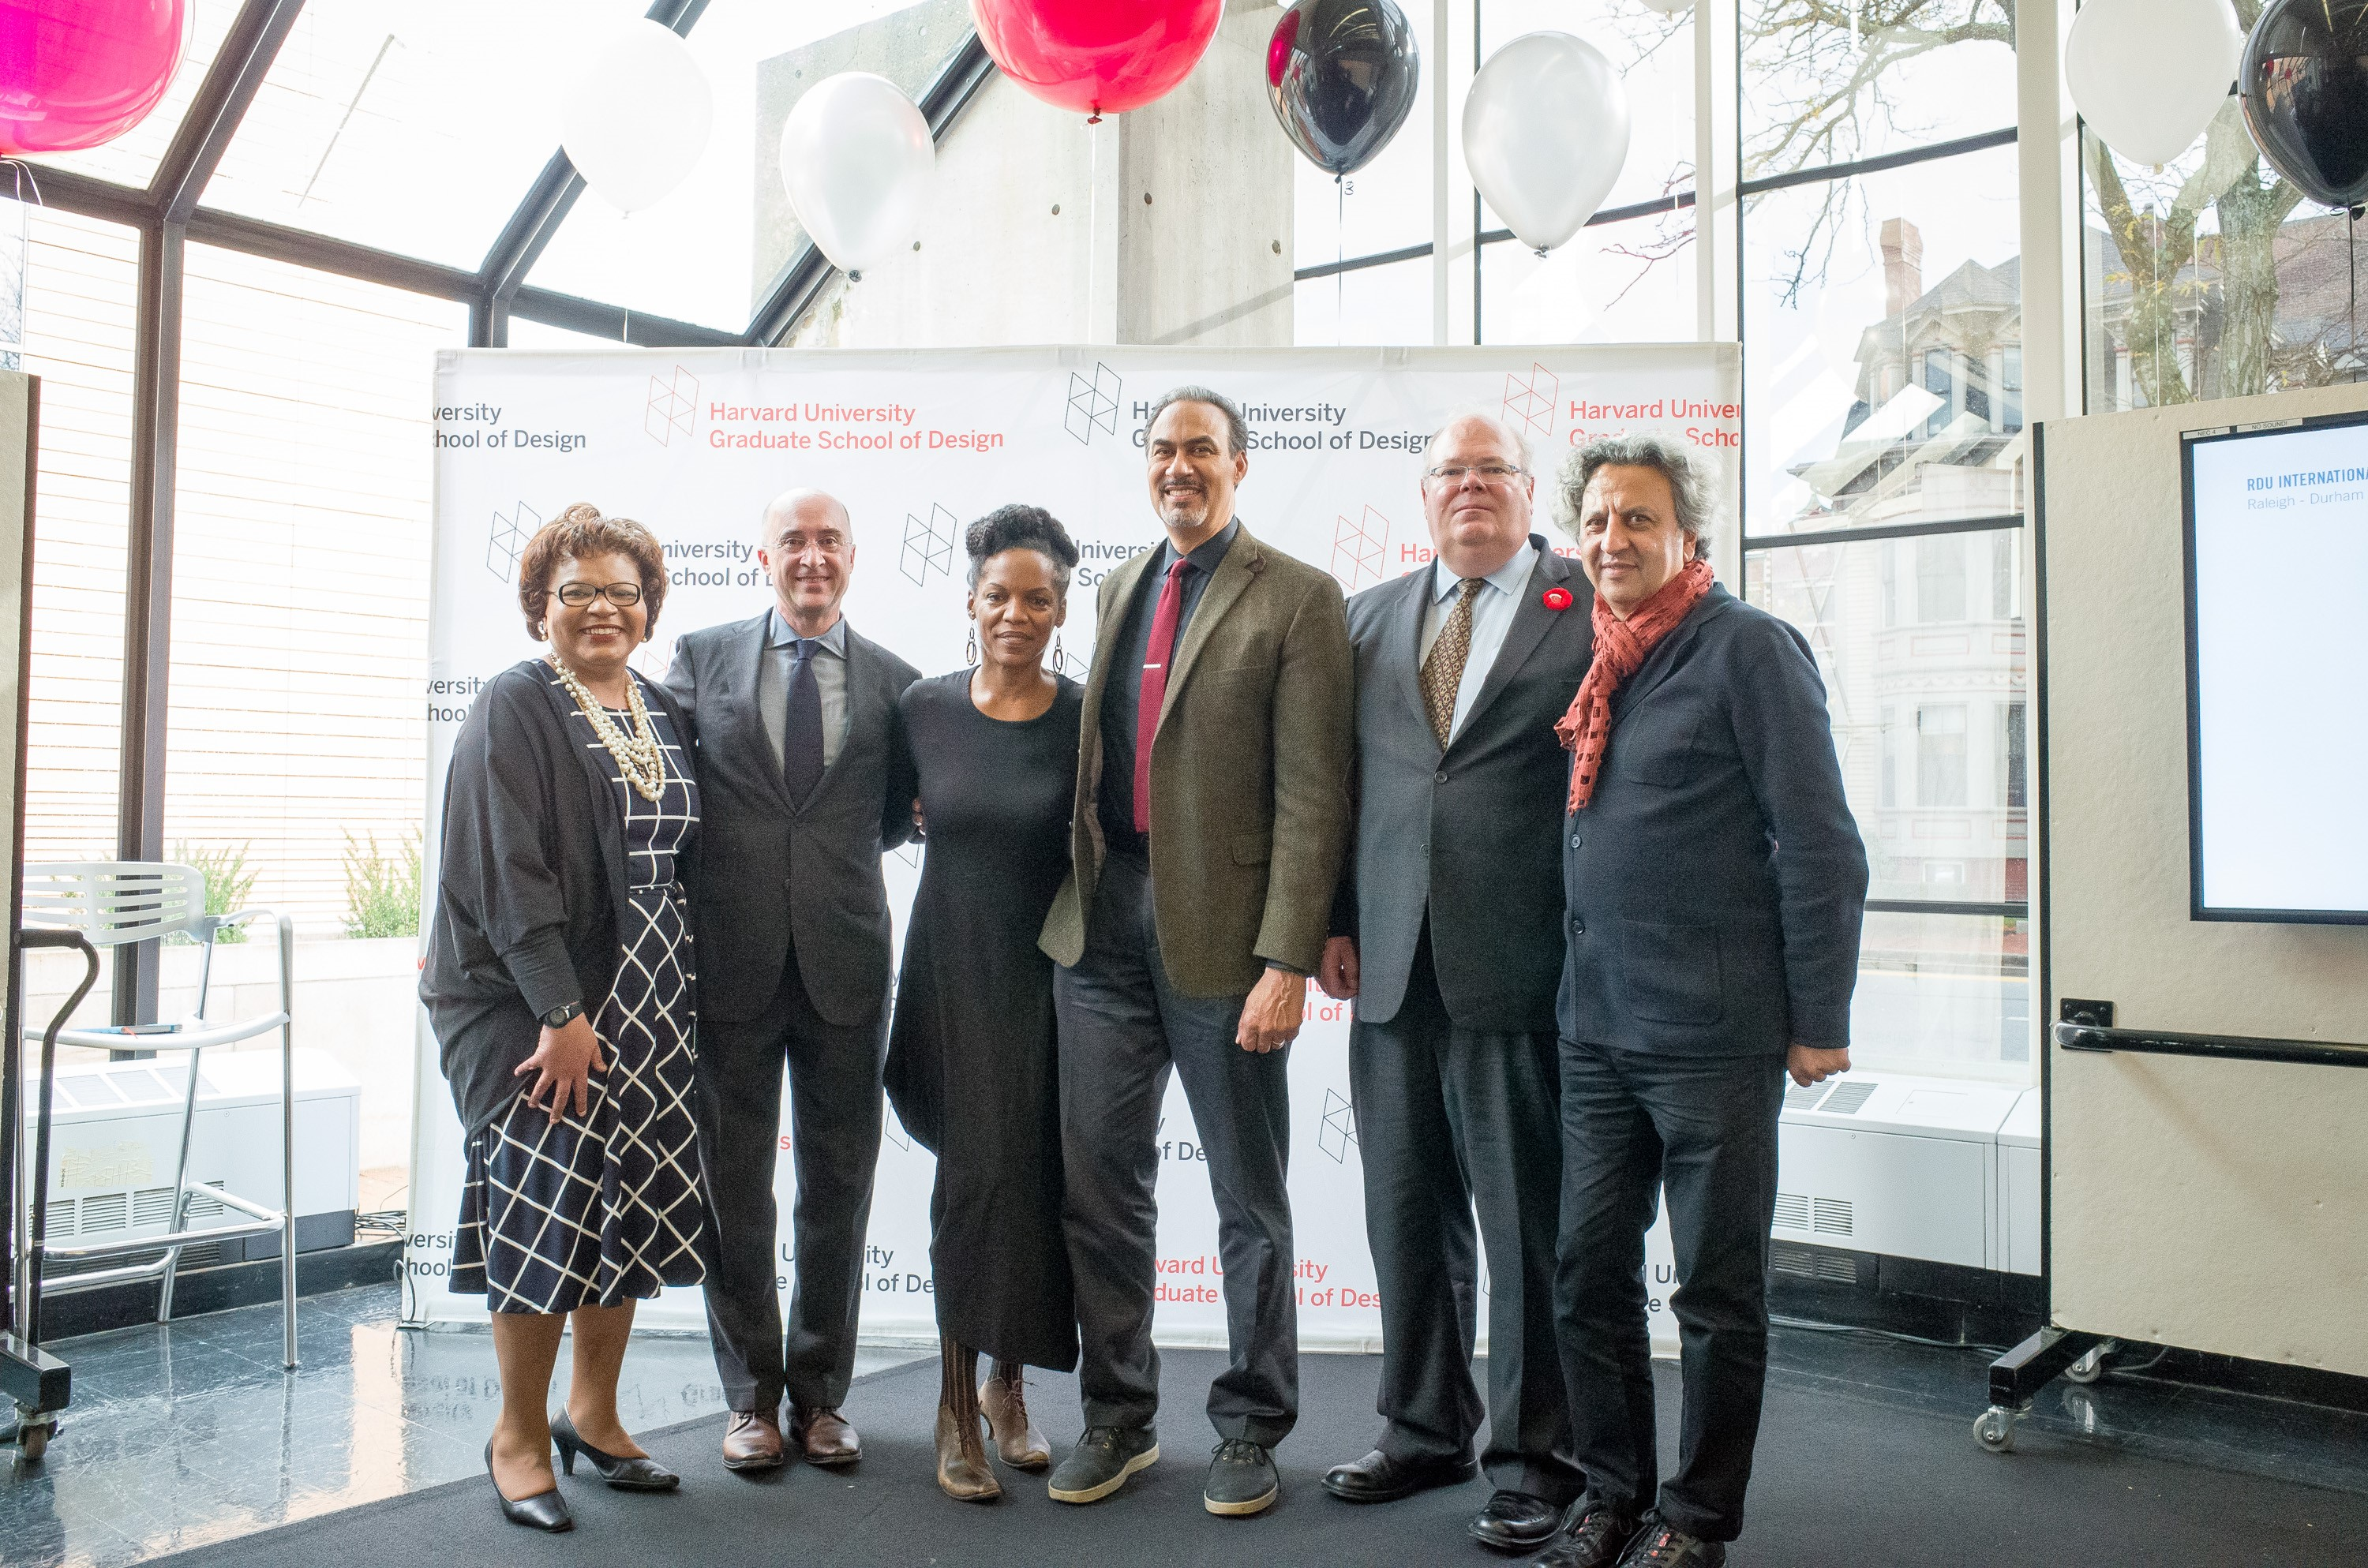 From left: Lorraine Smith; Phil Harrison, AB '86, MArch '93, Perkins+Will Chief Executive Officer and Co-Chair of the GSD's Grounded Visionaries campaign; Nnenna Freelon; Phil Freelon, Managing and Design Director at Perkins+Will; John K. F. Irving AB '83, MBA '89, Co-Chair of the GSD's Grounded Visionaries campaign; and Mohsen Mostafavi, Dean and Alexander and Victoria Wiley Professor of Design.